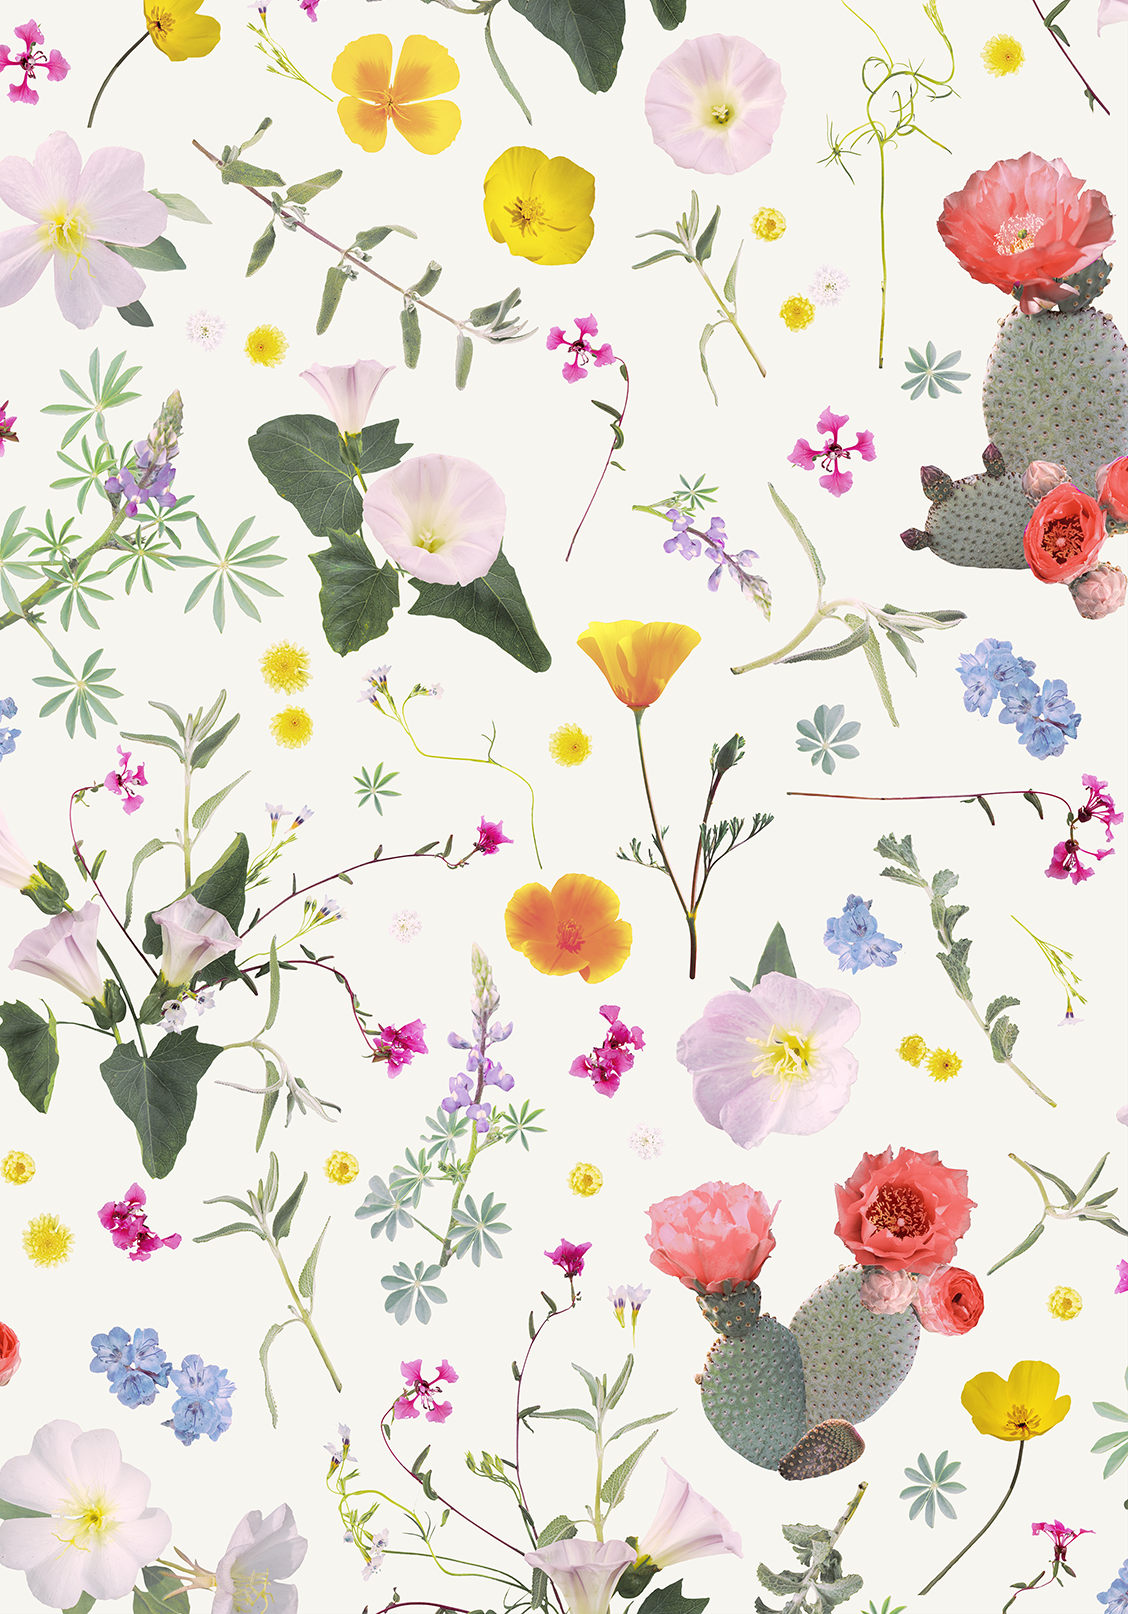 California Native Removable Fabric Wallpaper Peel And Stick